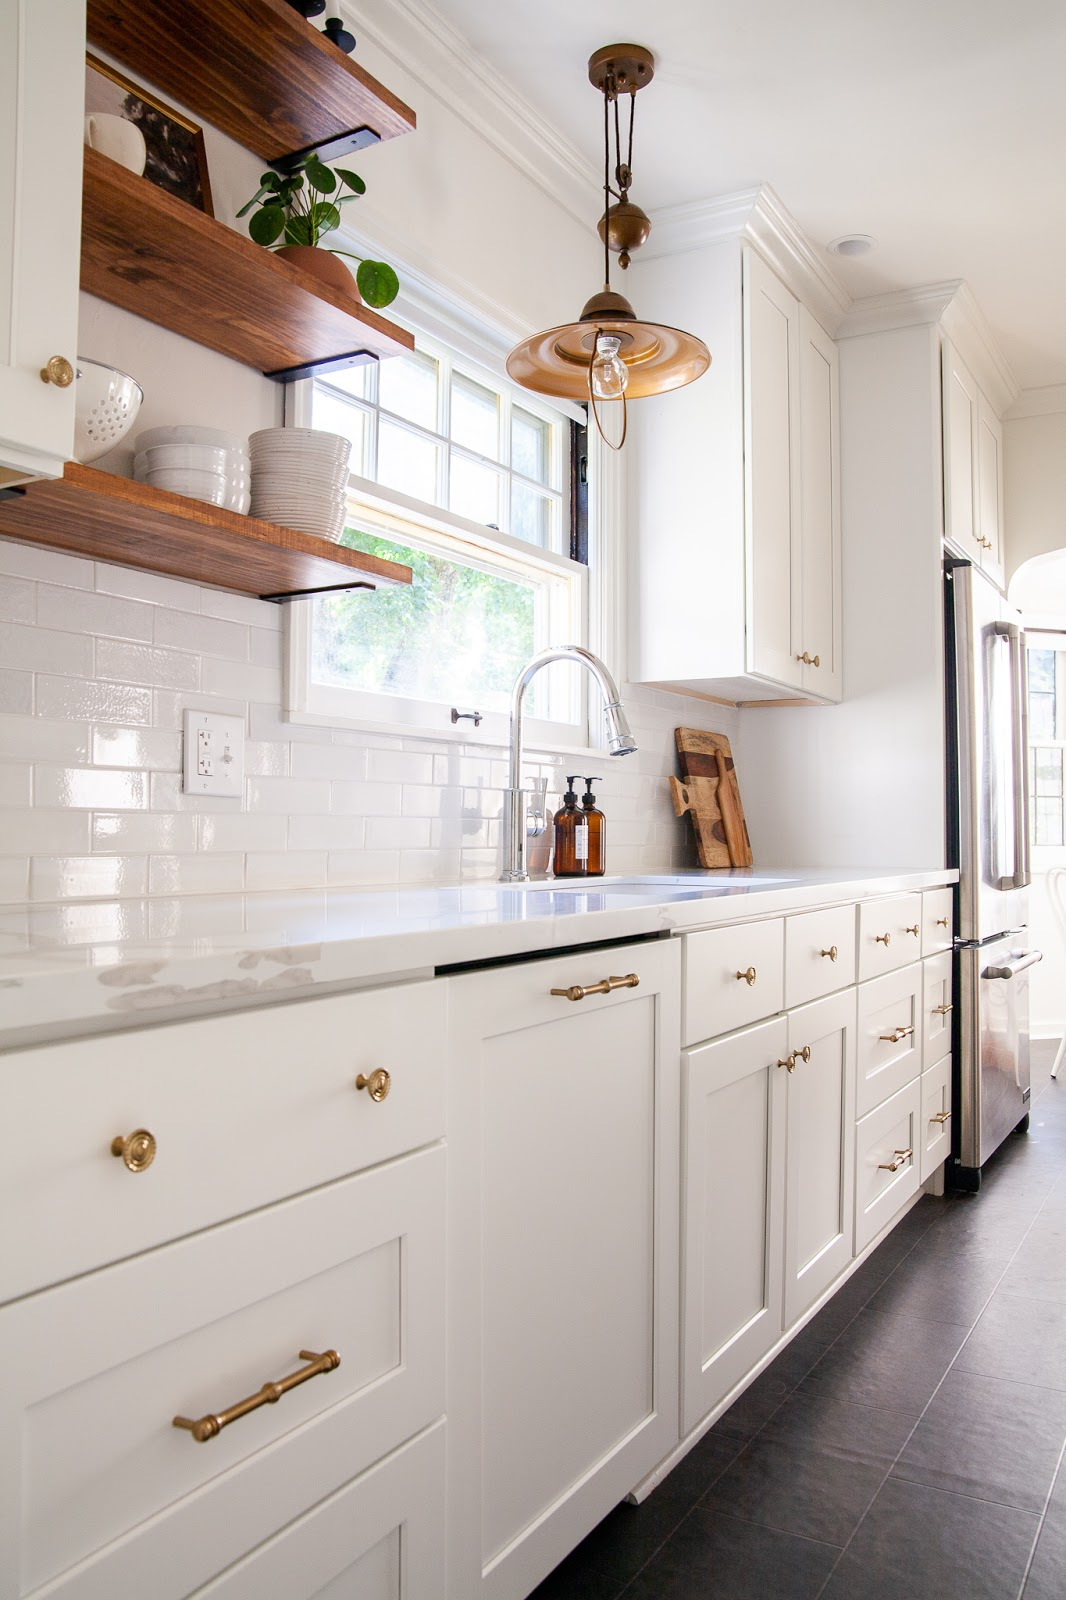 Comparison Of Budget Friendly Kitchen Cabinet Sources Ikea And Beyond Create Enjoy